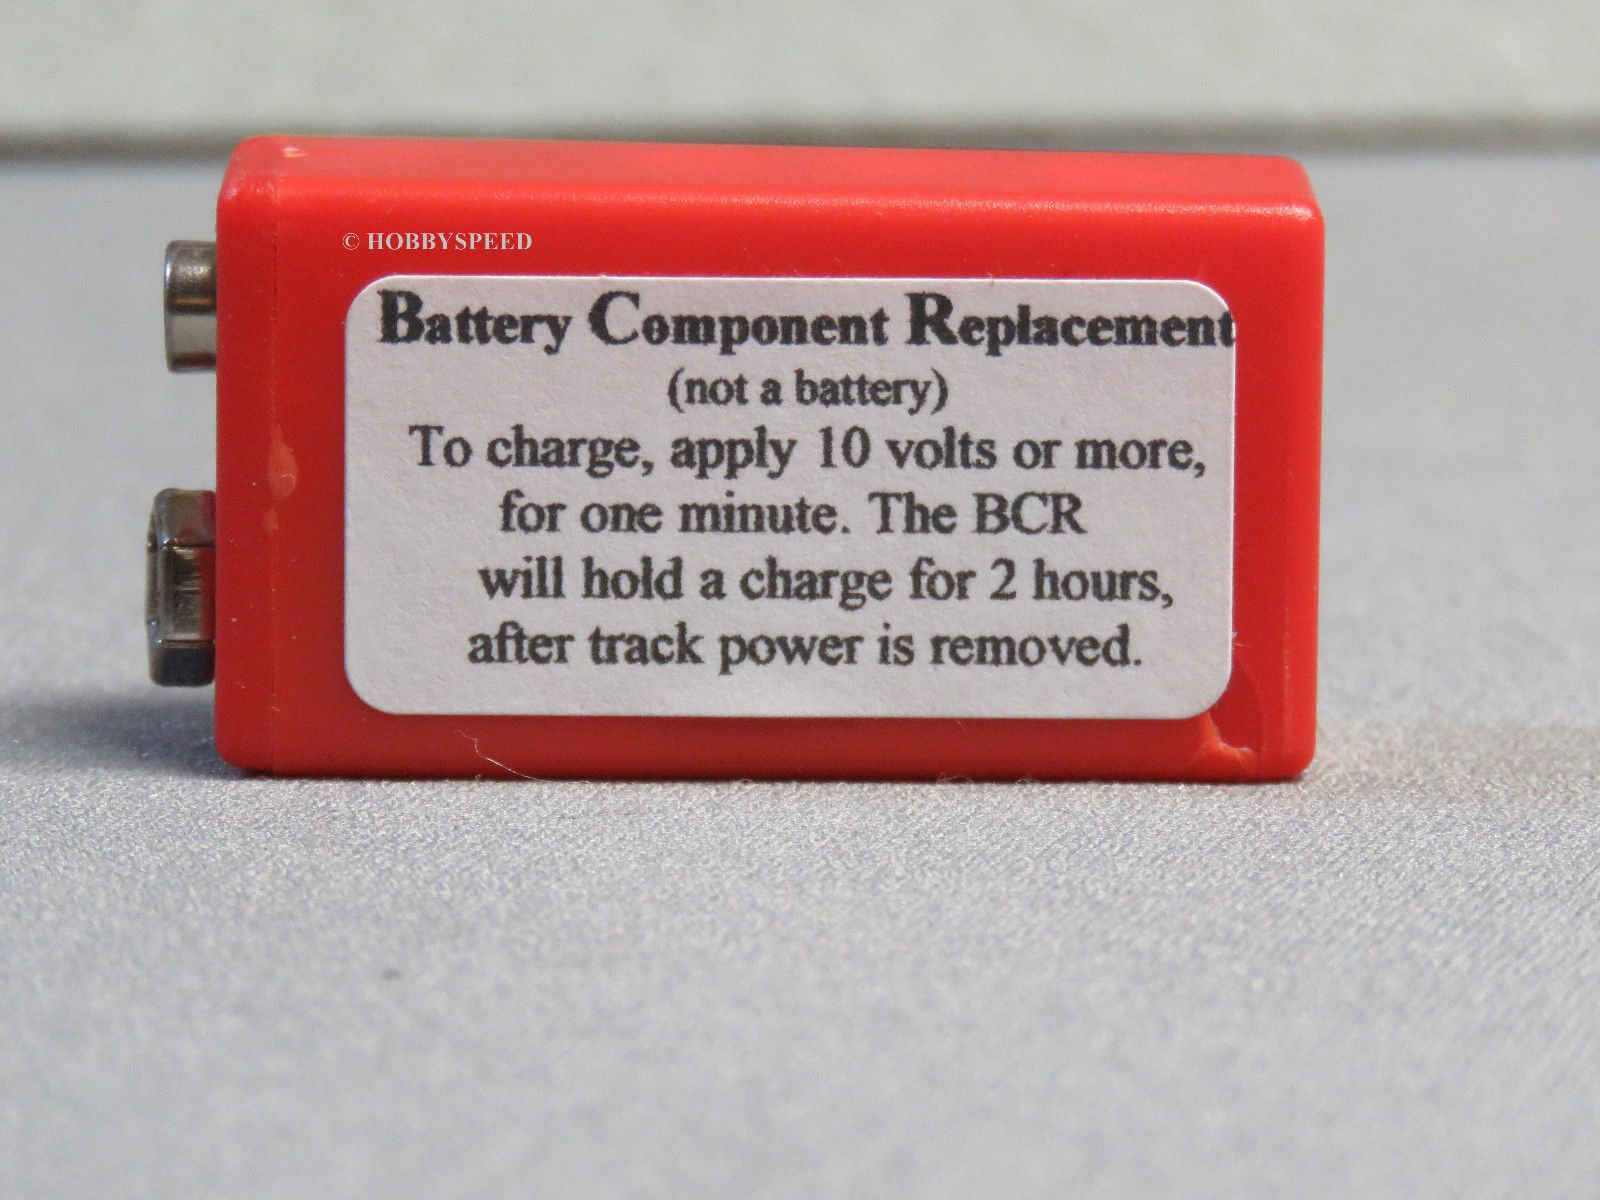 MTH BCR BATTERY COMPONENT REPLACEMENT FOR PS1 PS2 ENGINES W 9 VOLT BATTERIES by BCR (Image #3)